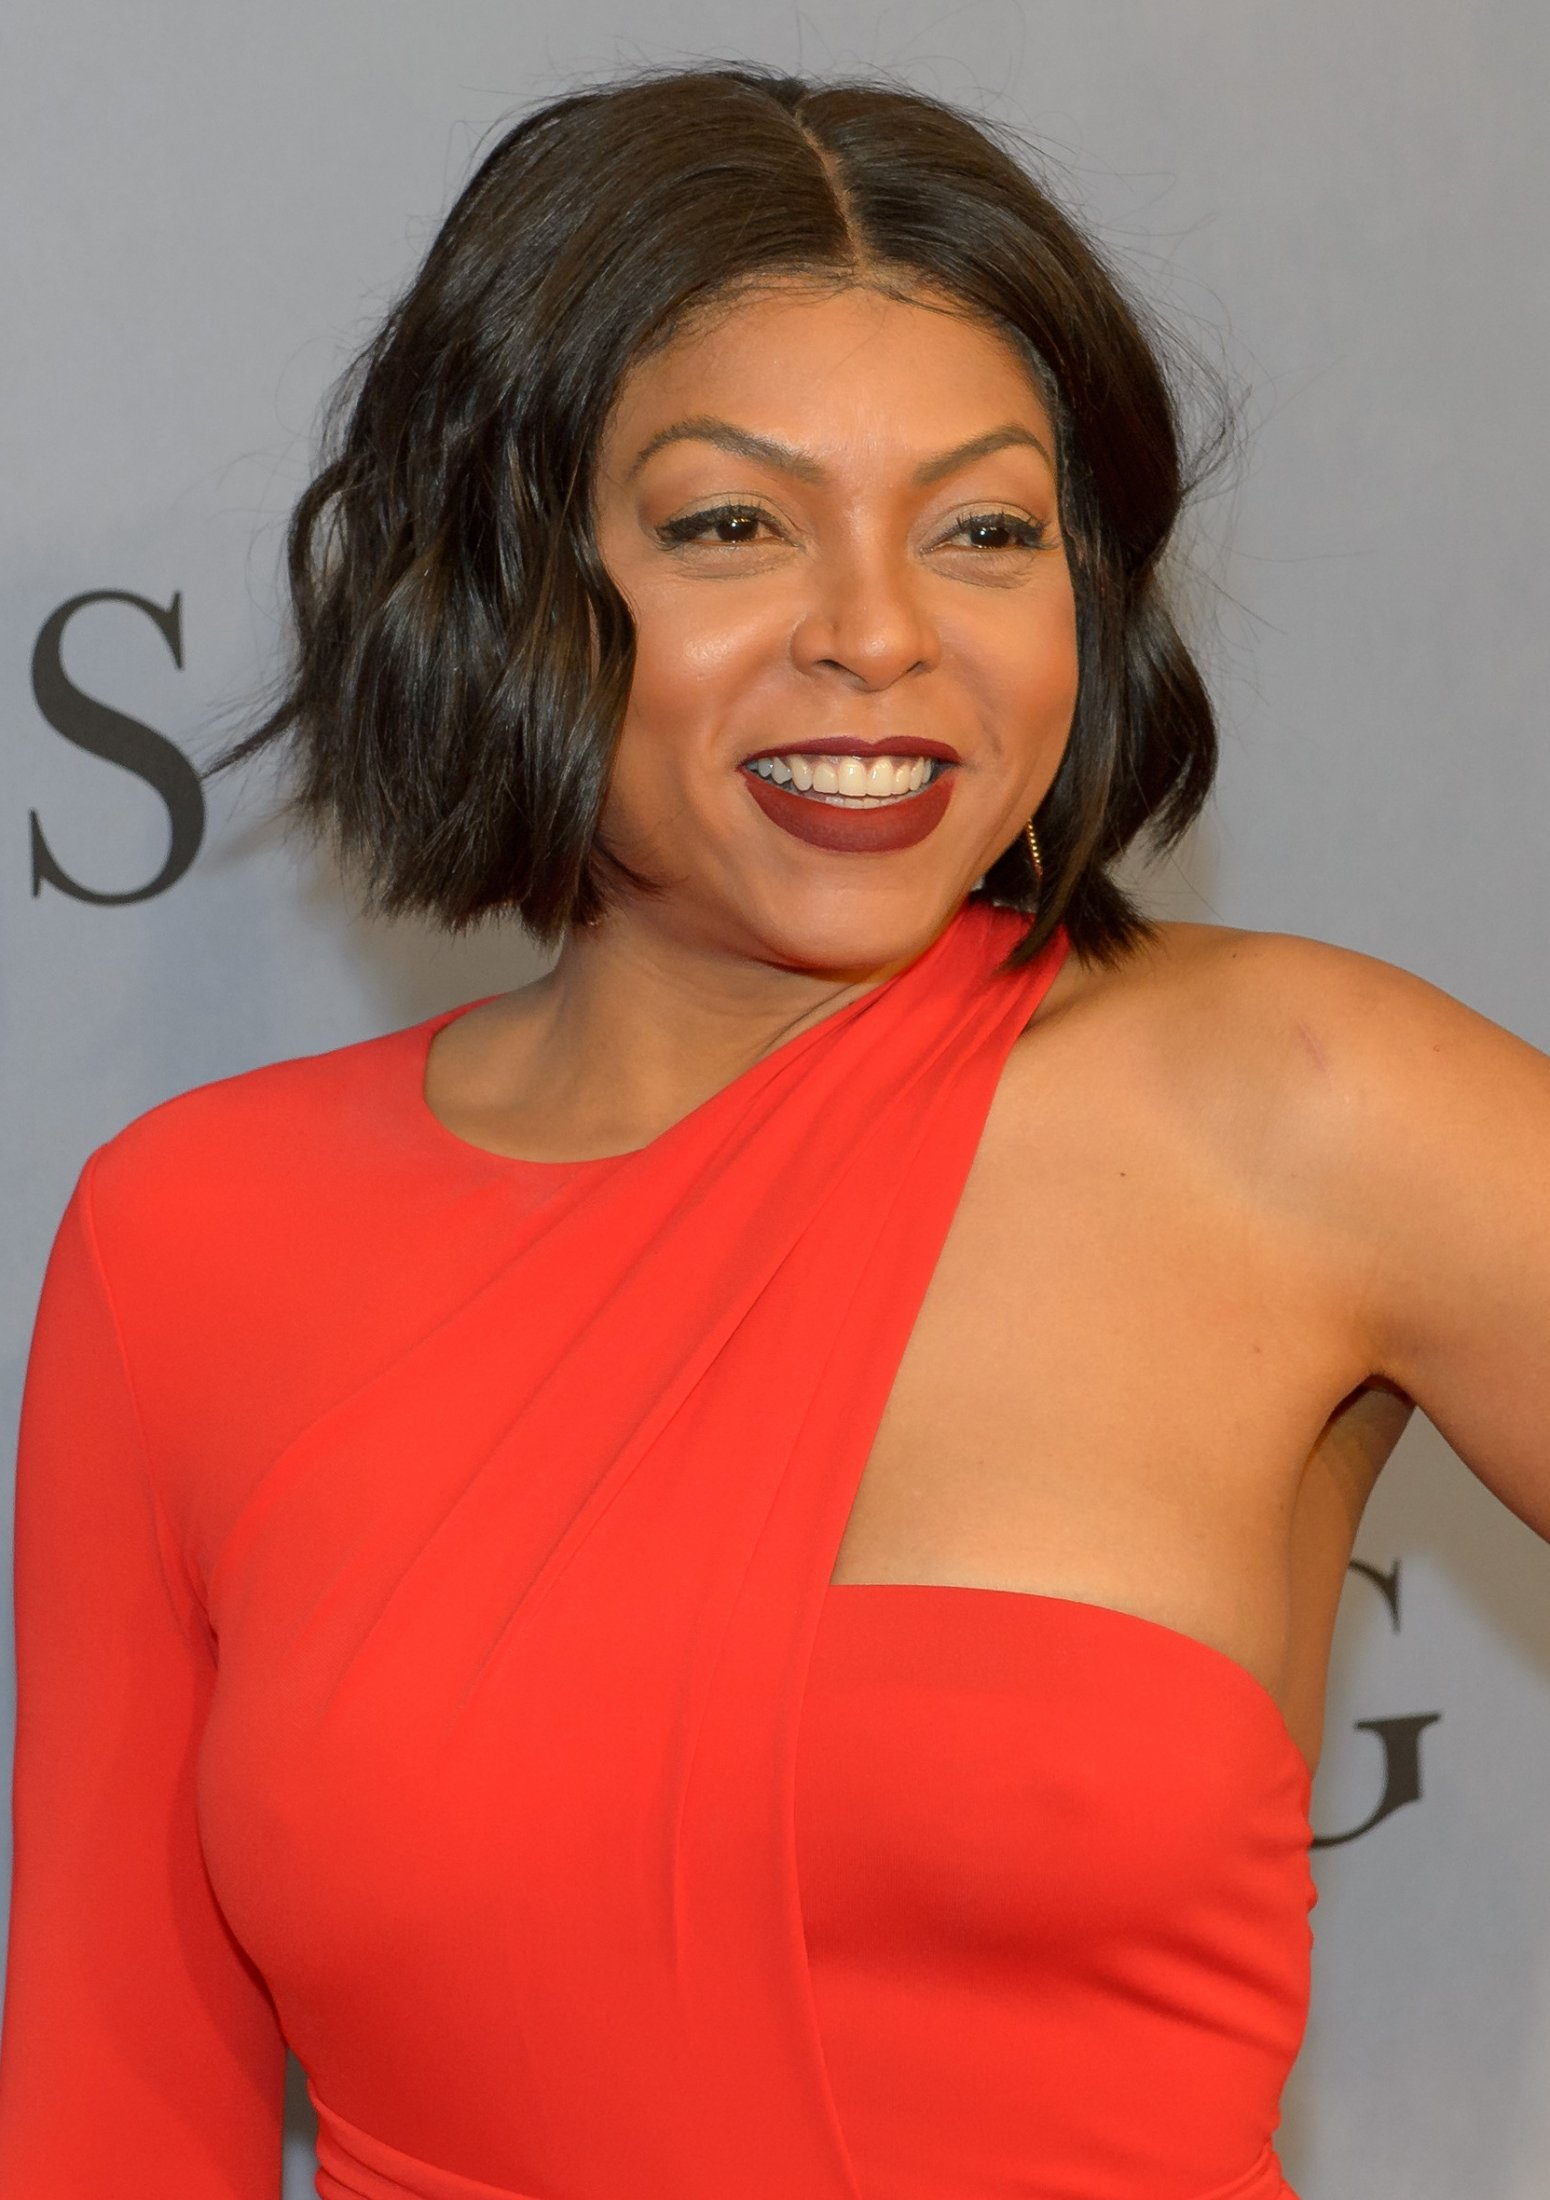 "American actress and singer Taraji P. Henson arrives on the red carpet for the global celebration of the film ""Hidden Figures"" at the SVA Theatre, Saturday, Dec. 10, 2016 in New York. The film is based on the book of the same title, by Margot Lee Shetterly, and chronicles the lives of Katherine Johnson, Dorothy Vaughan and Mary Jackson -- African-American women working at NASA as ""human computers,"" who were critical to the success of John Glenn's Friendship 7 mission in 1962. Photo Credit: (NASA/Bill Ingalls)"